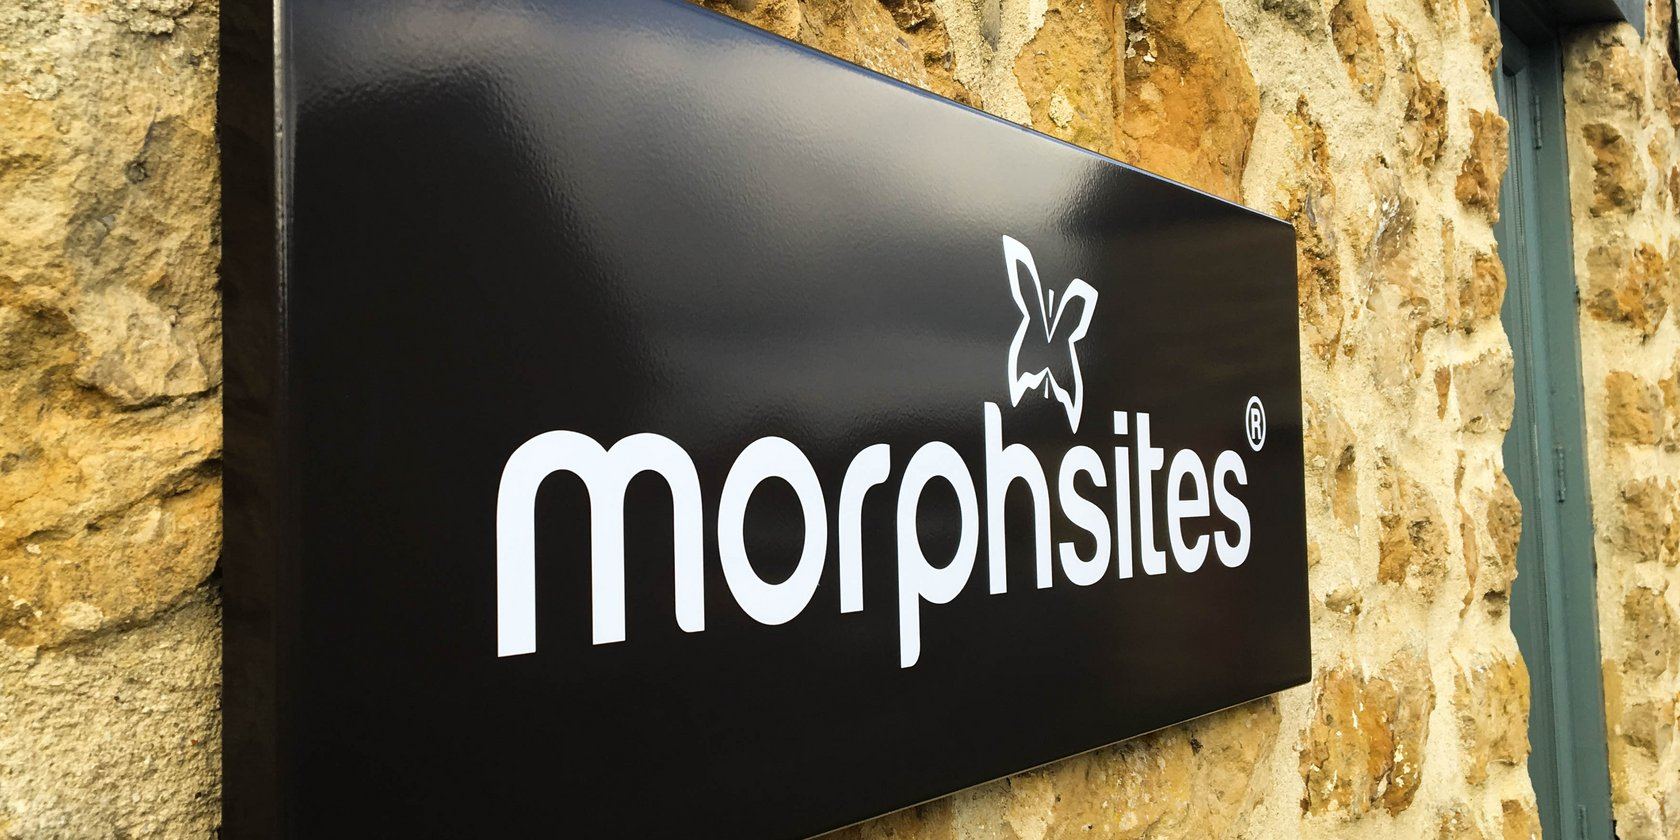 Wall Mounted Tray Sign for Morphsites